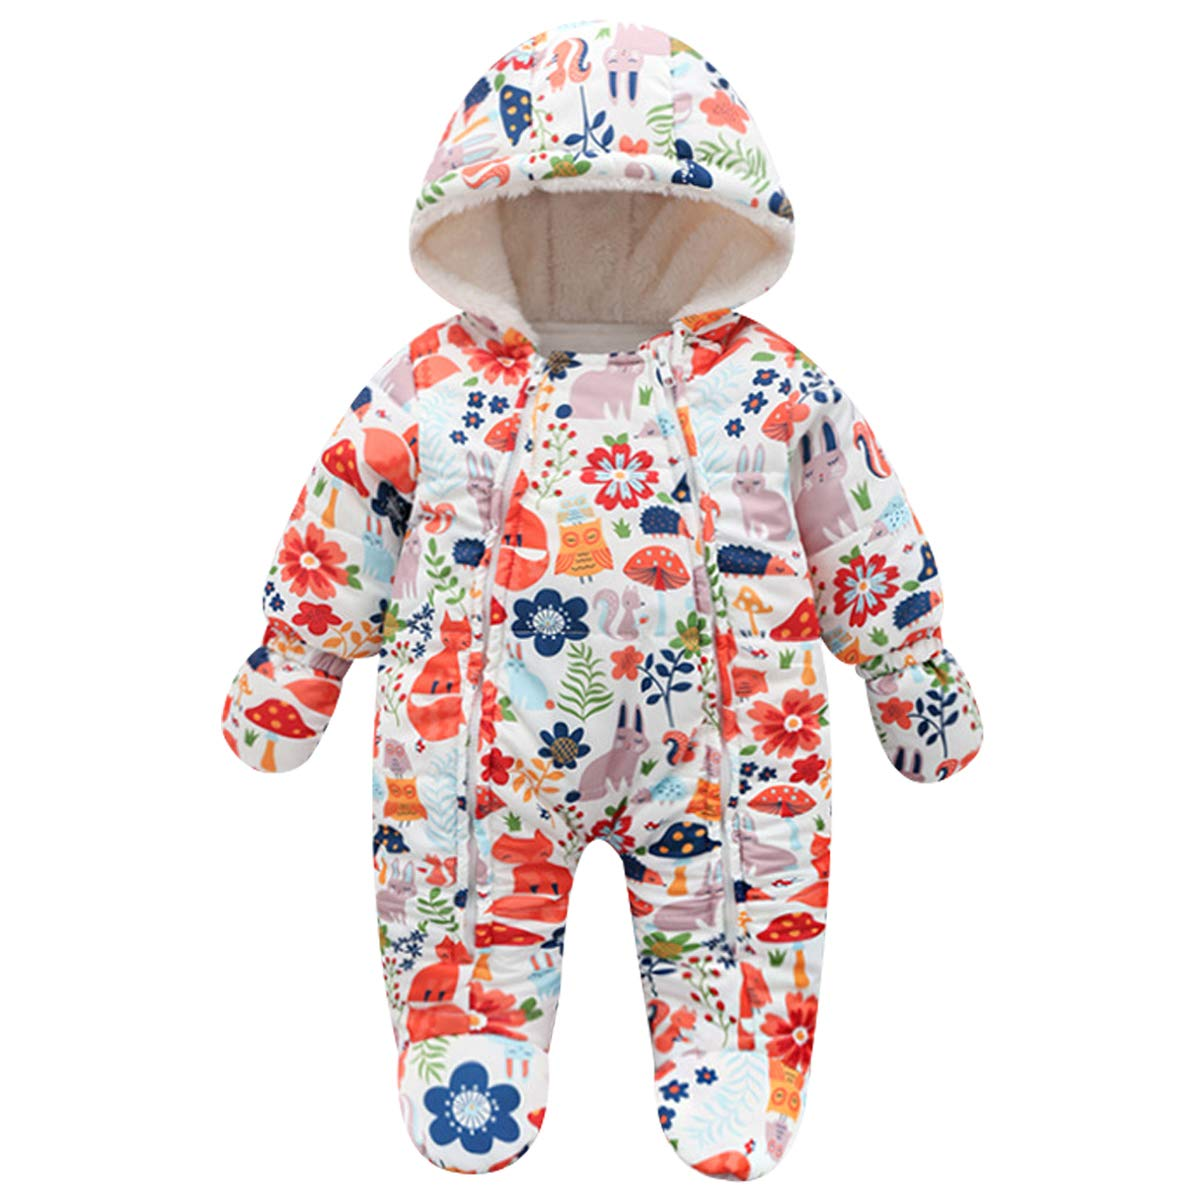 famuka Warm Baby Winter Clothes Hooded Snowsuit Outerwear Onesie with Gloves (Fox, 3-6 Months) by famuka